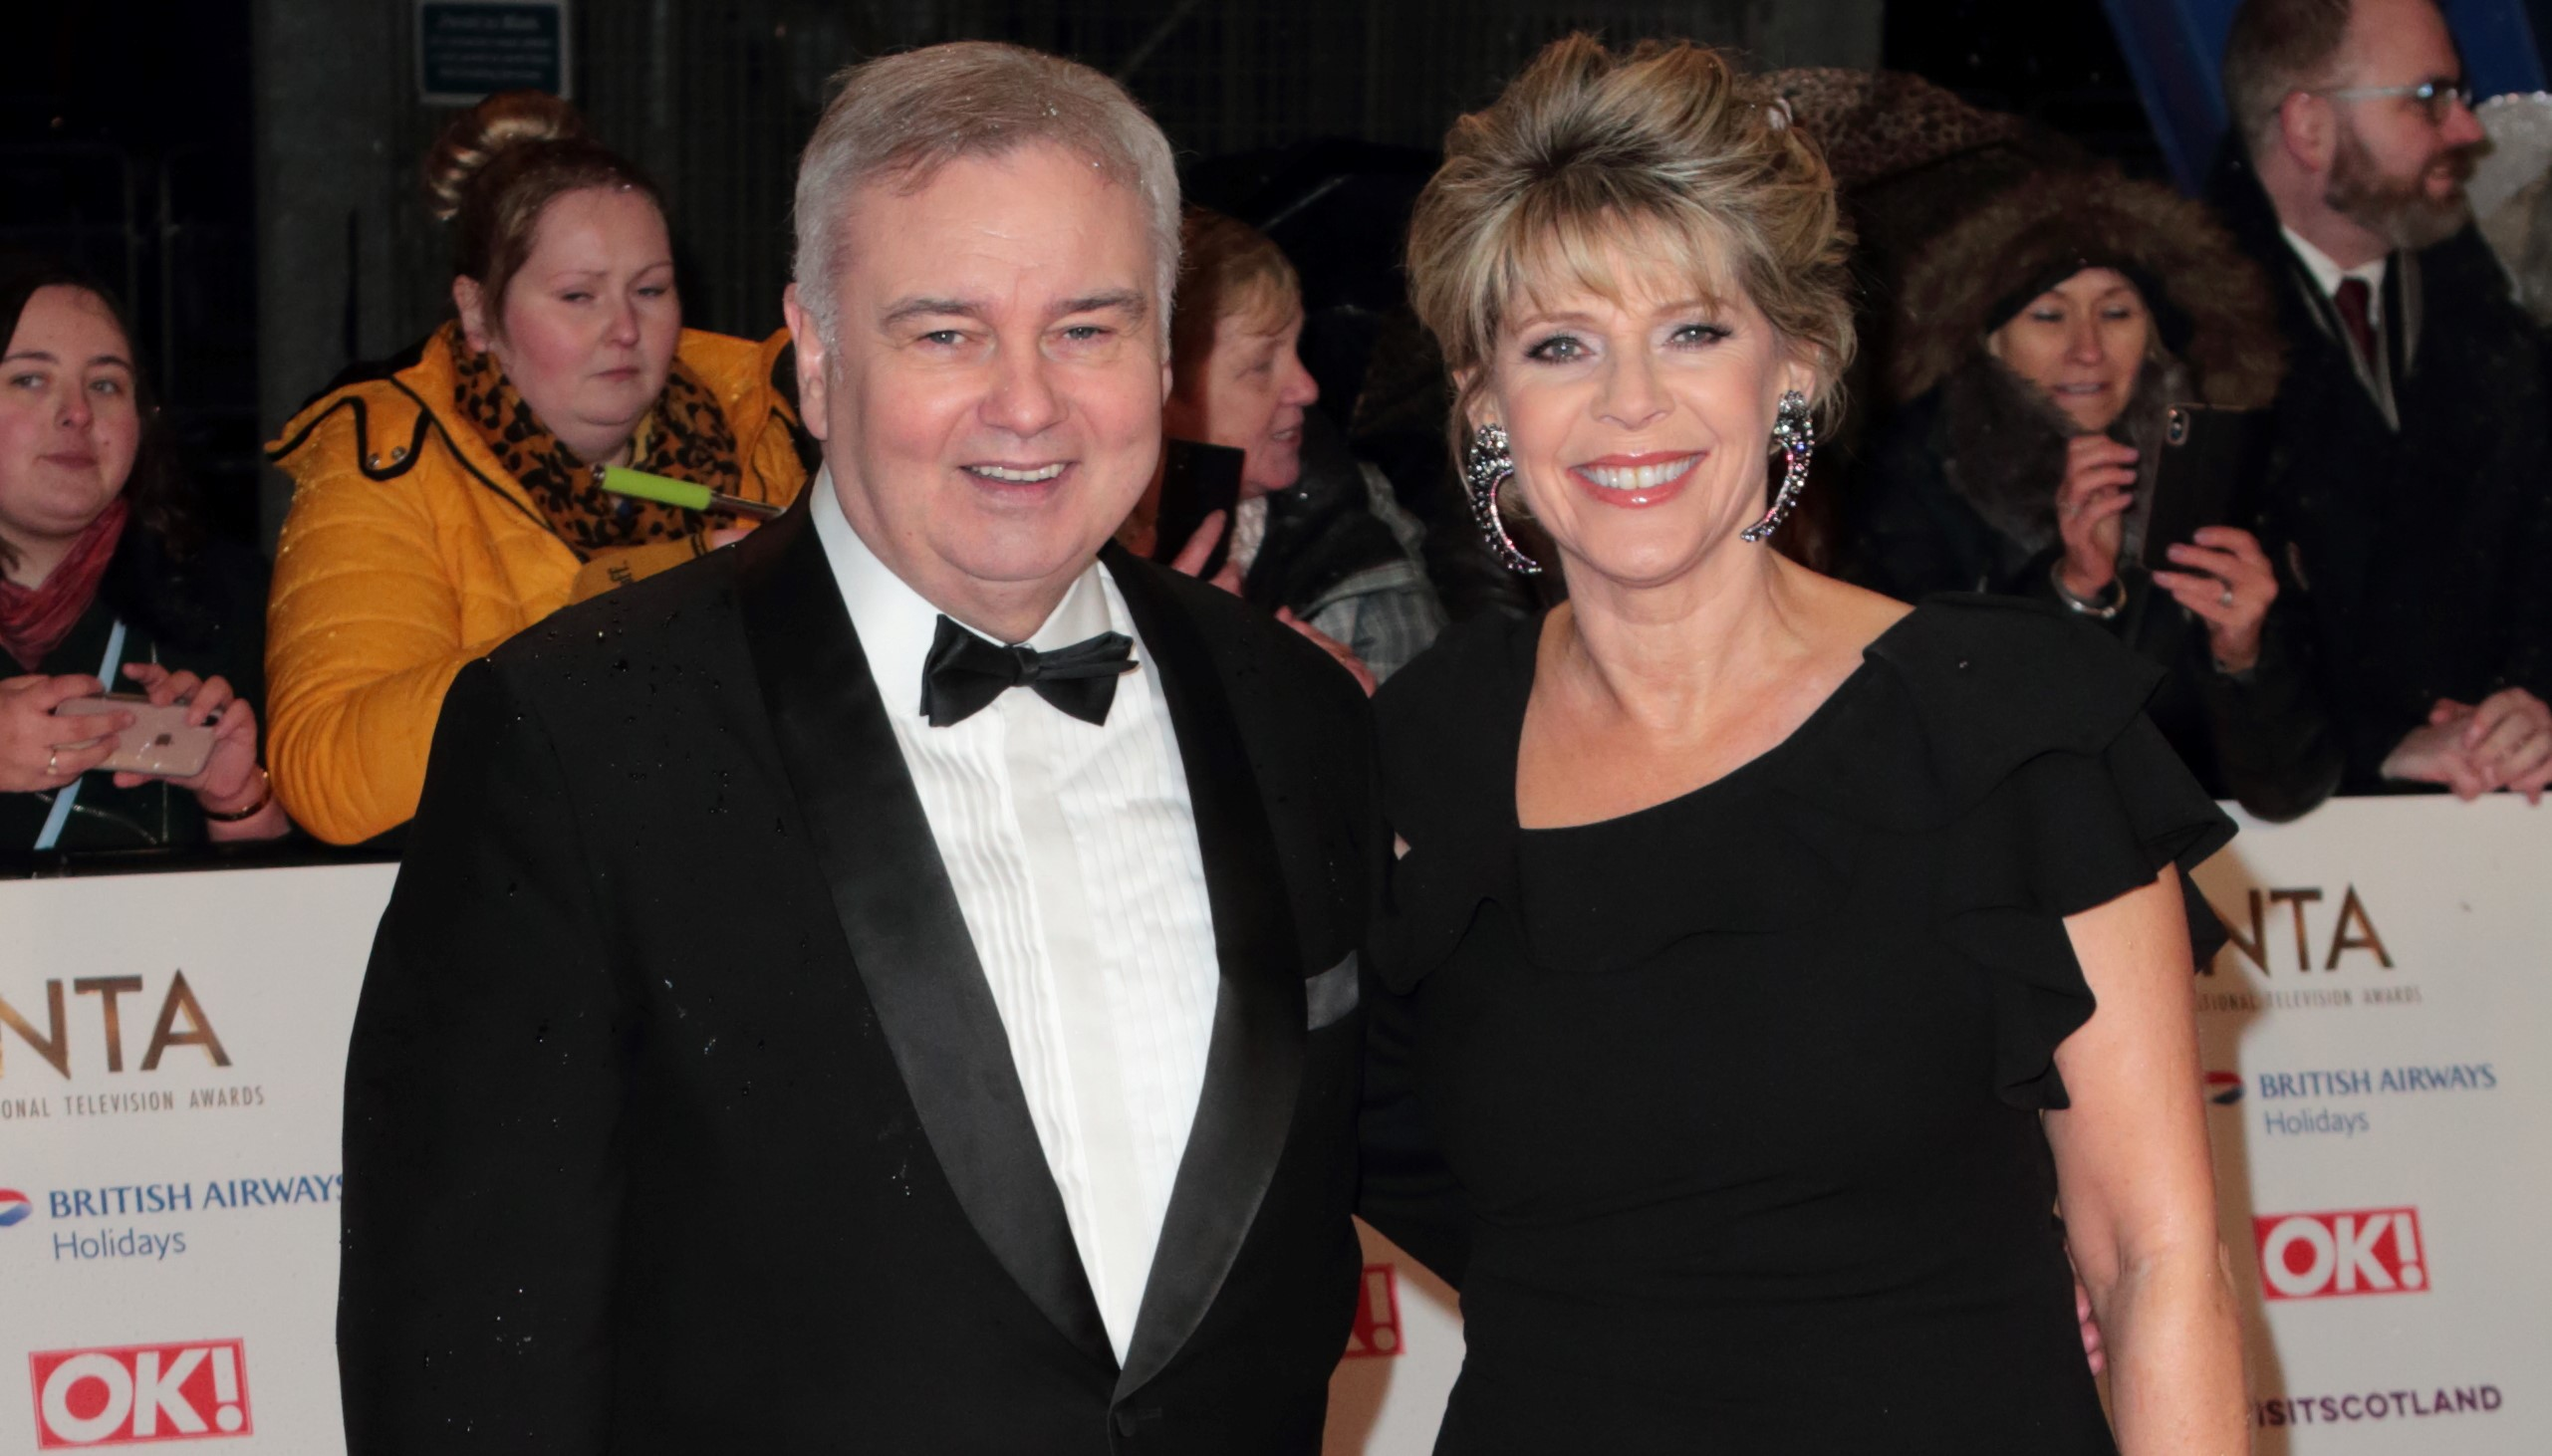 Eamonn Holmes reveals he makes big sacrifices to appear on TV